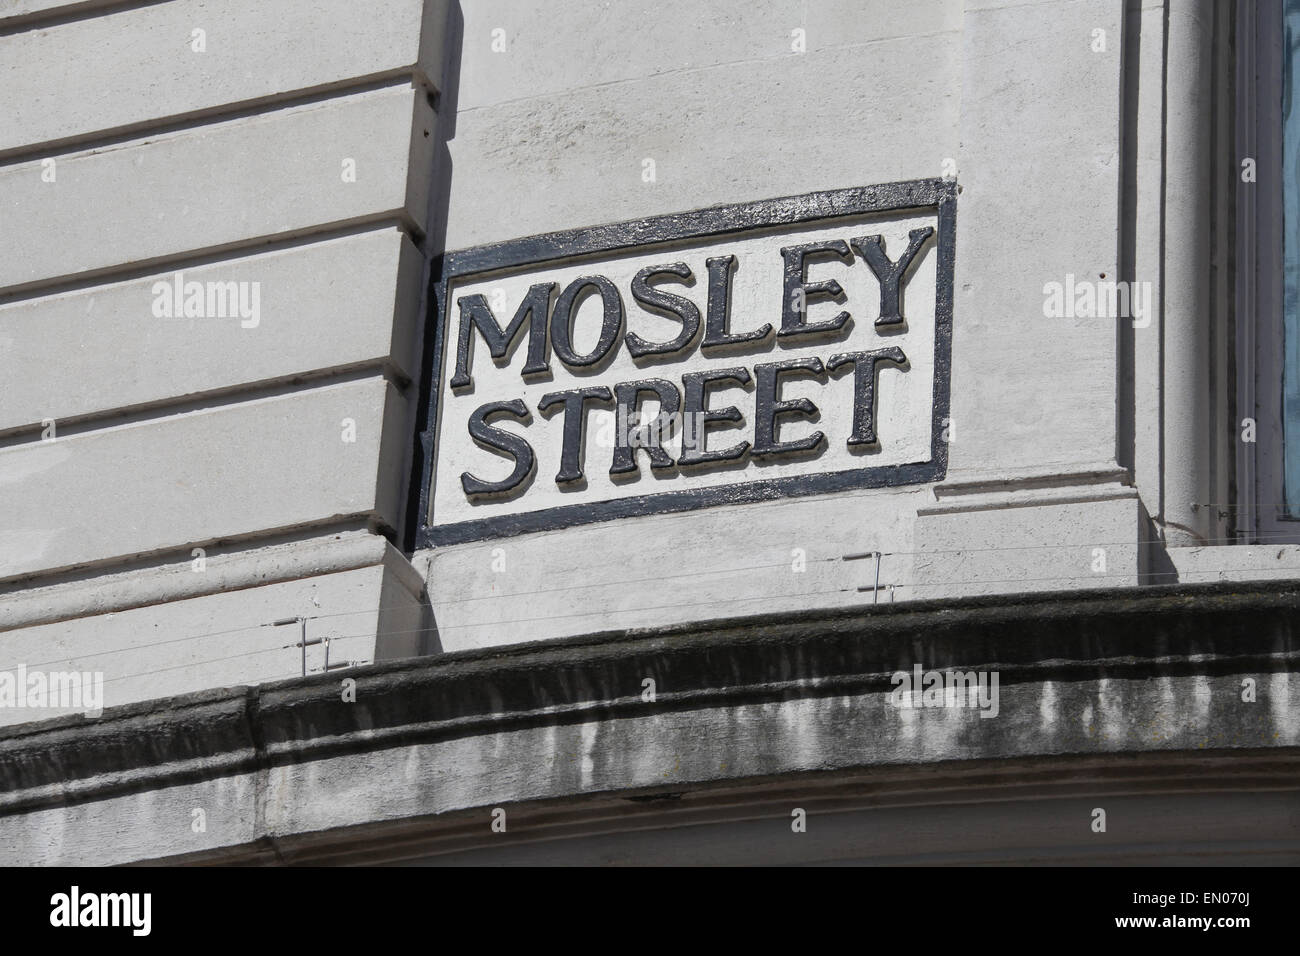 Mosley Street Sign in Manchester City Centre - Stock Image